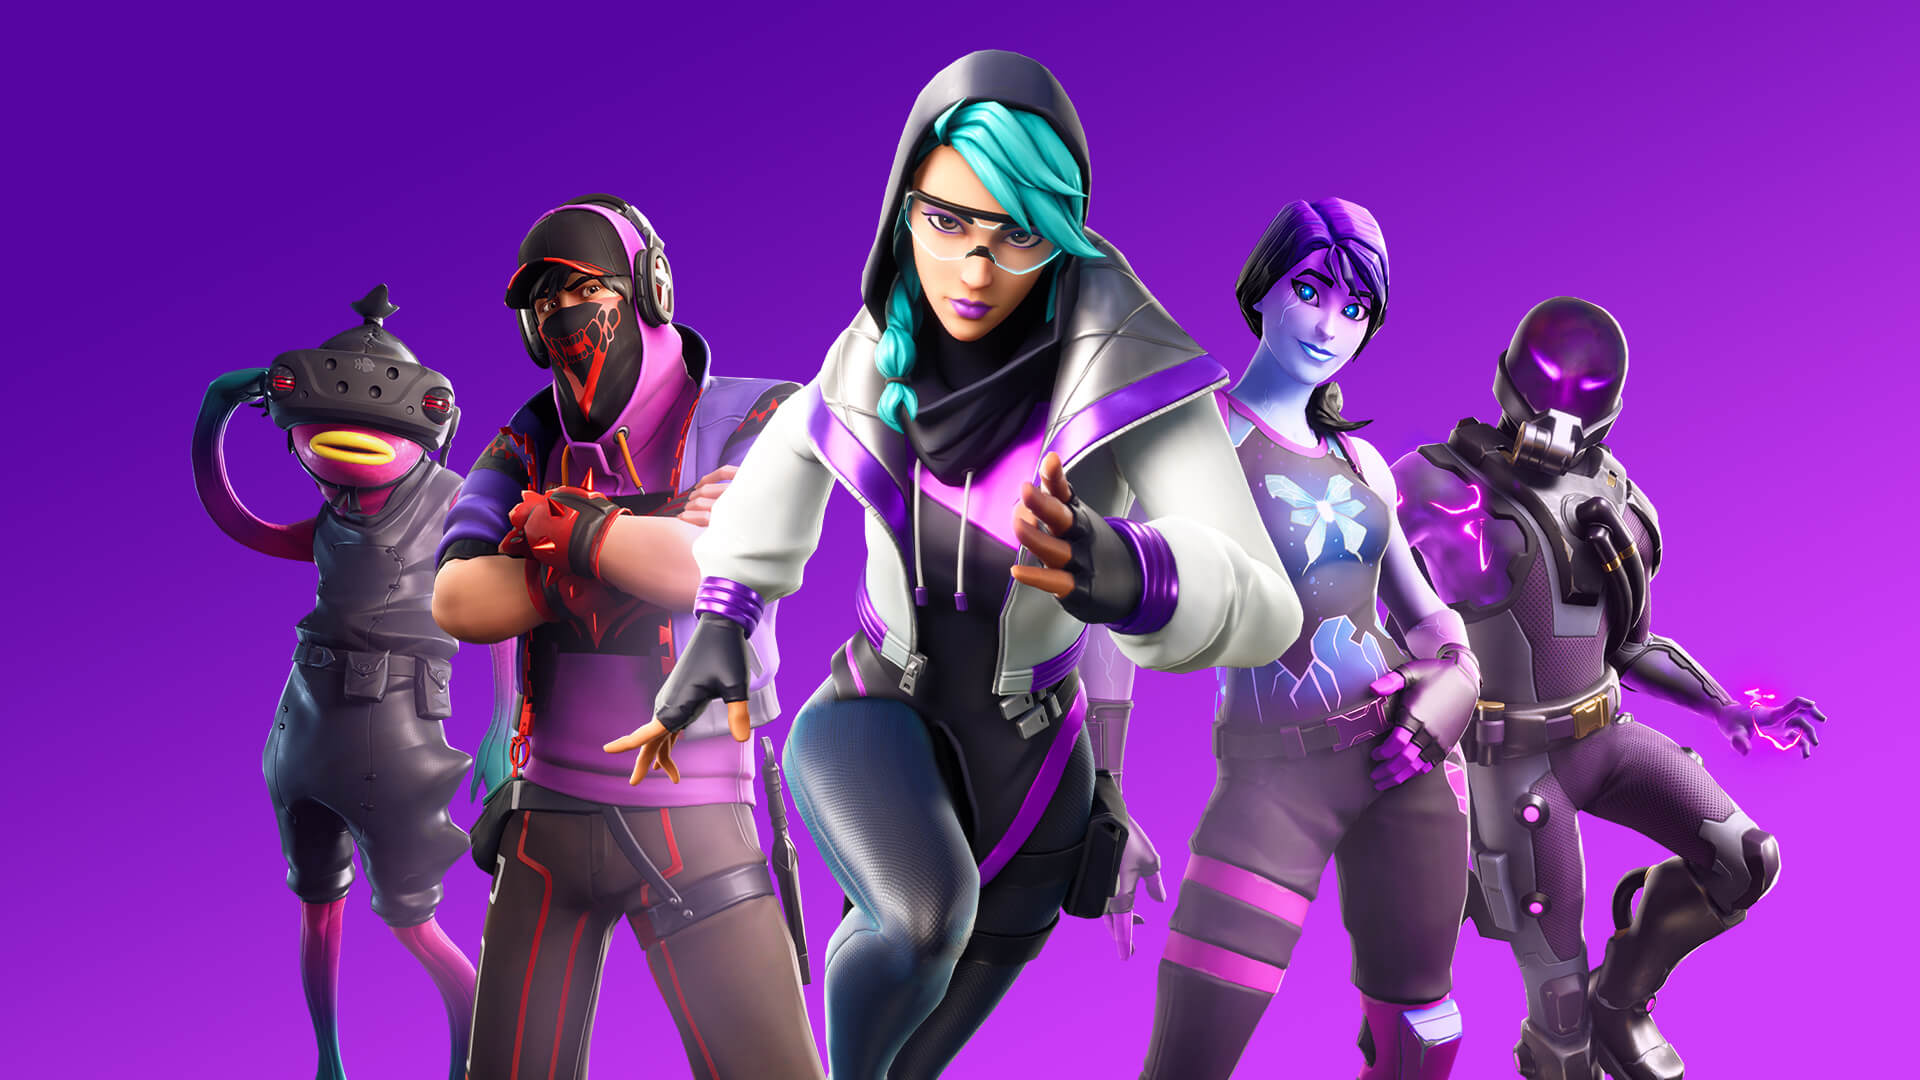 Fortnite is finally getting skill-based matchmaking and bots